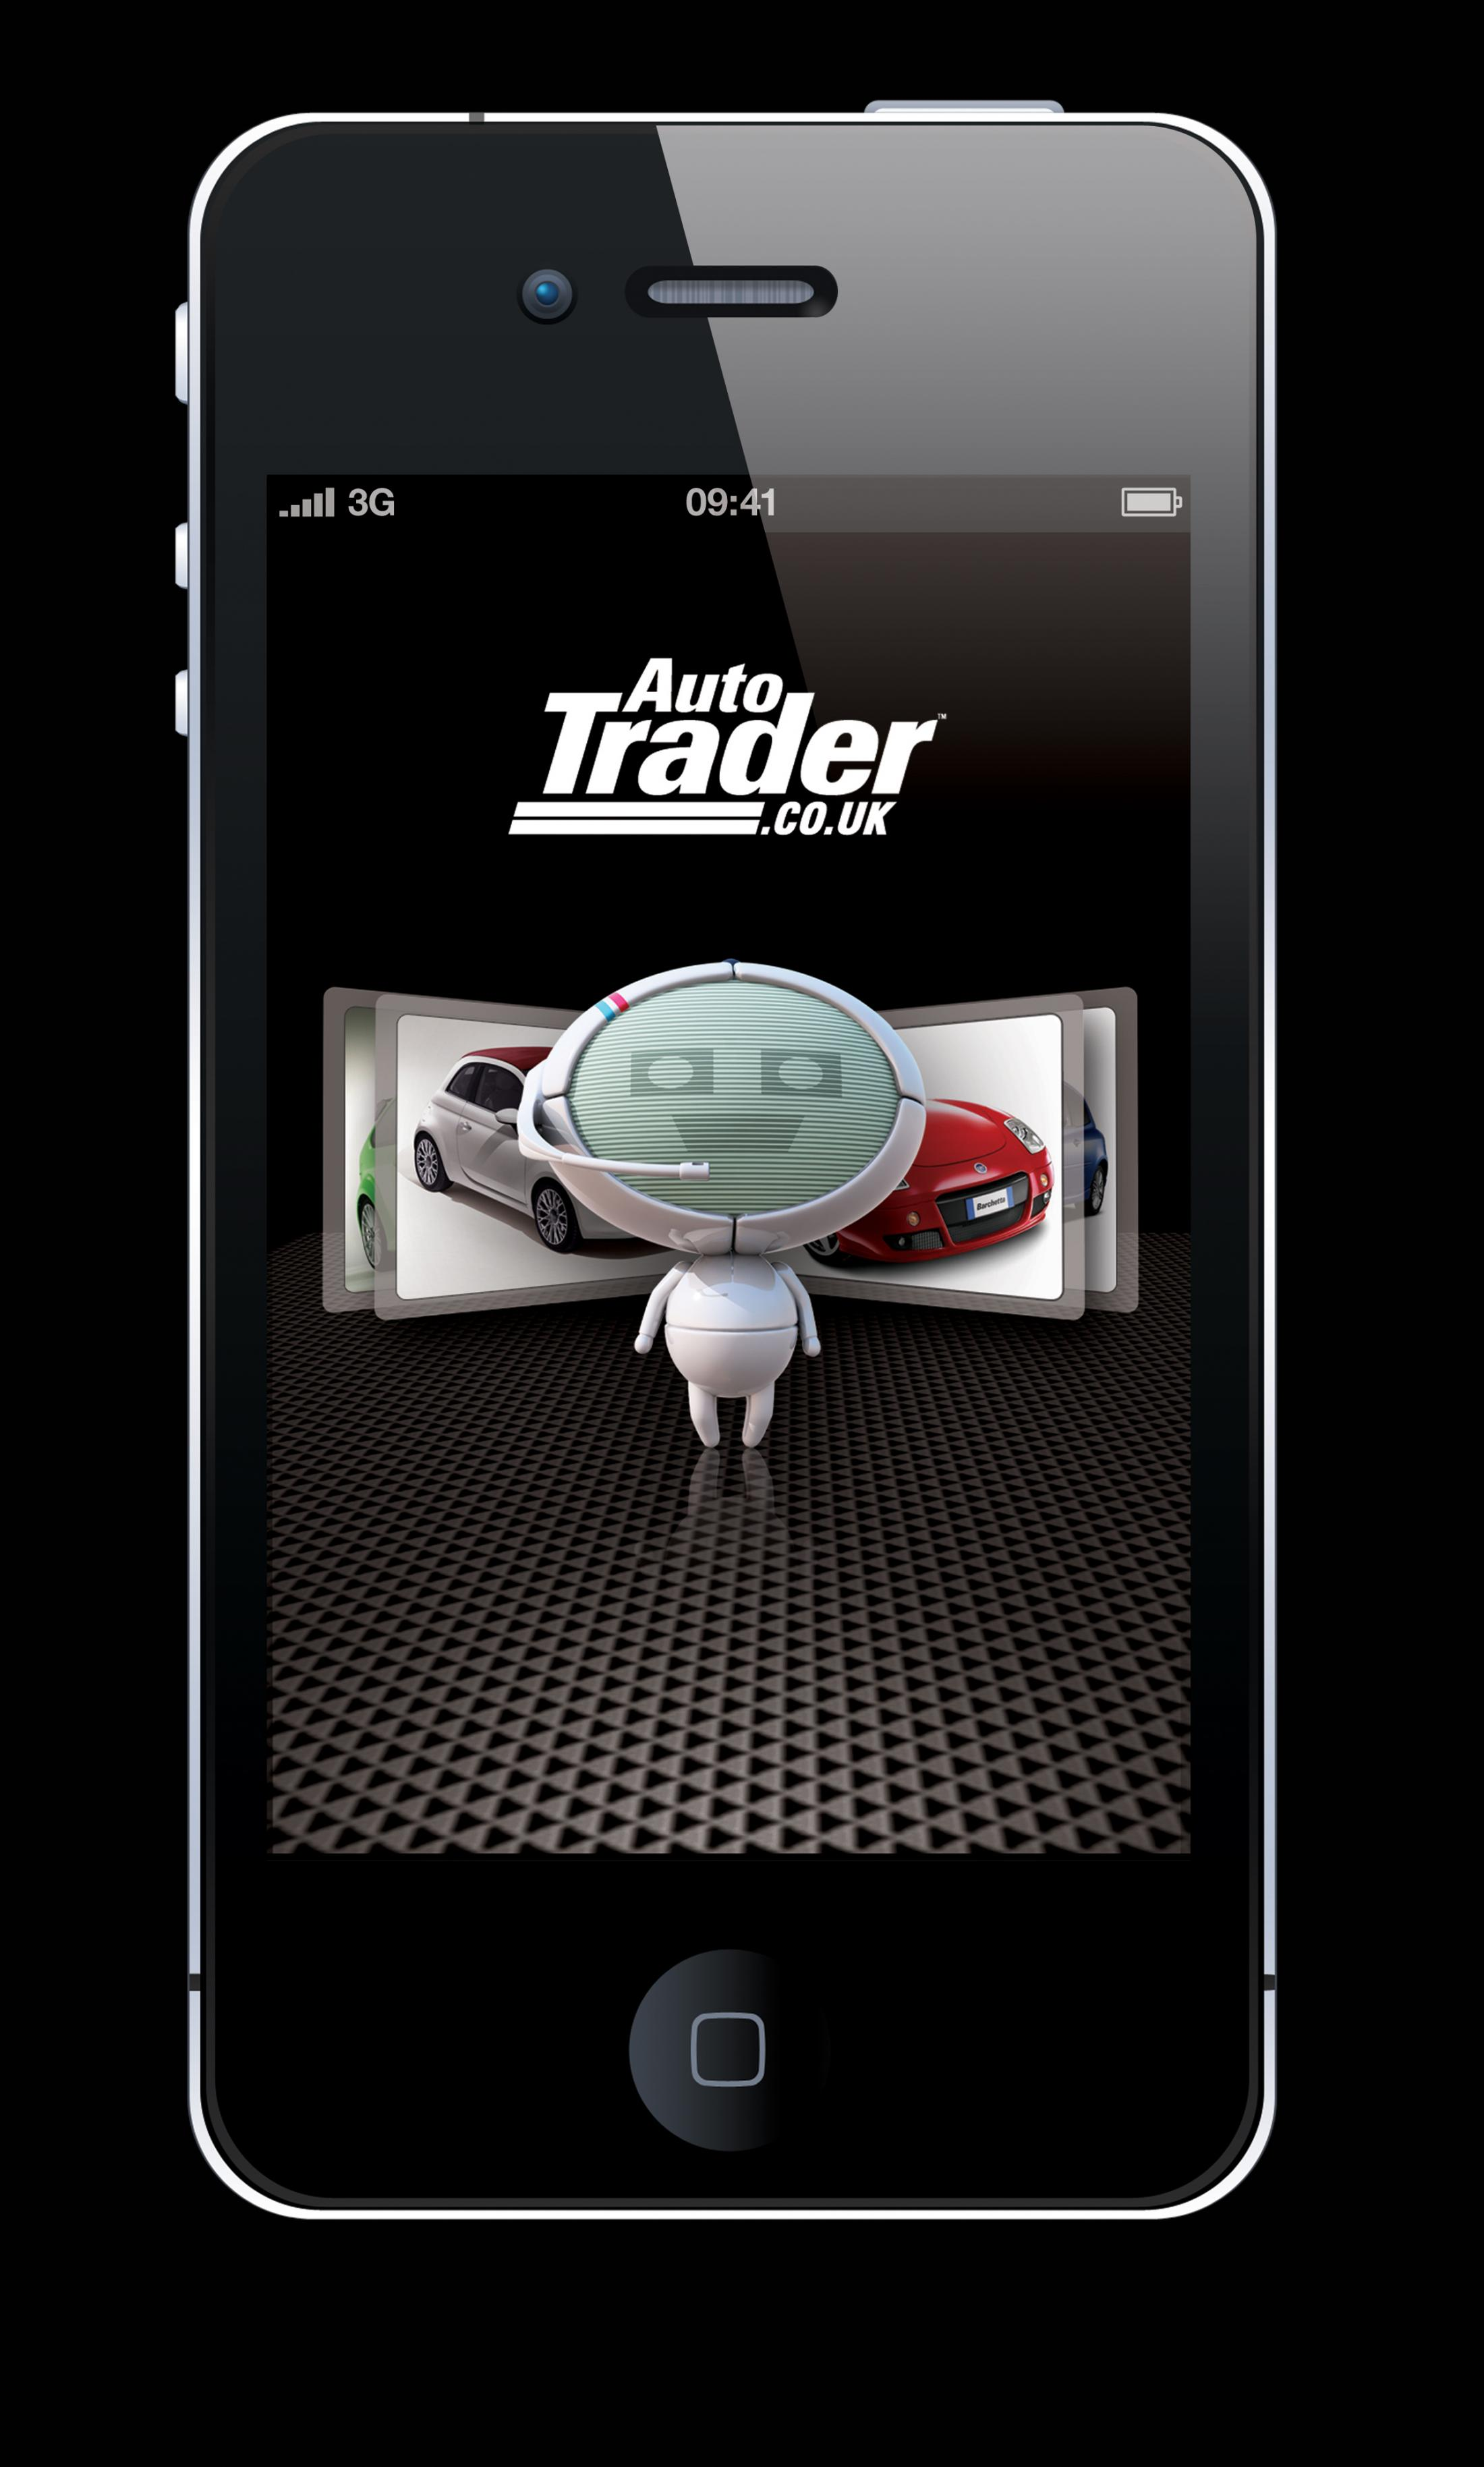 Thumbnail for Auto Trader iPhone App